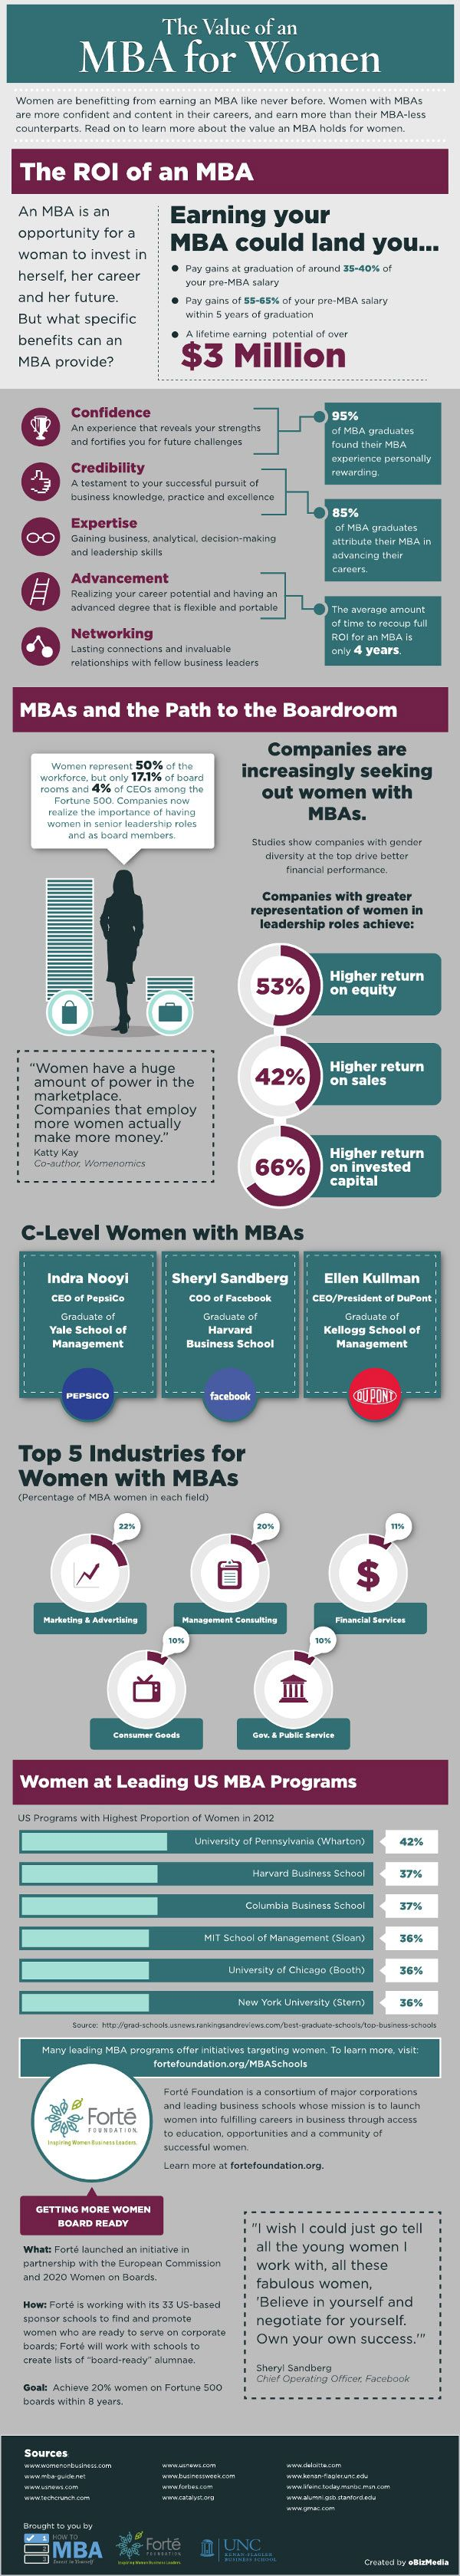 The MBA provides an unparalleled career edge